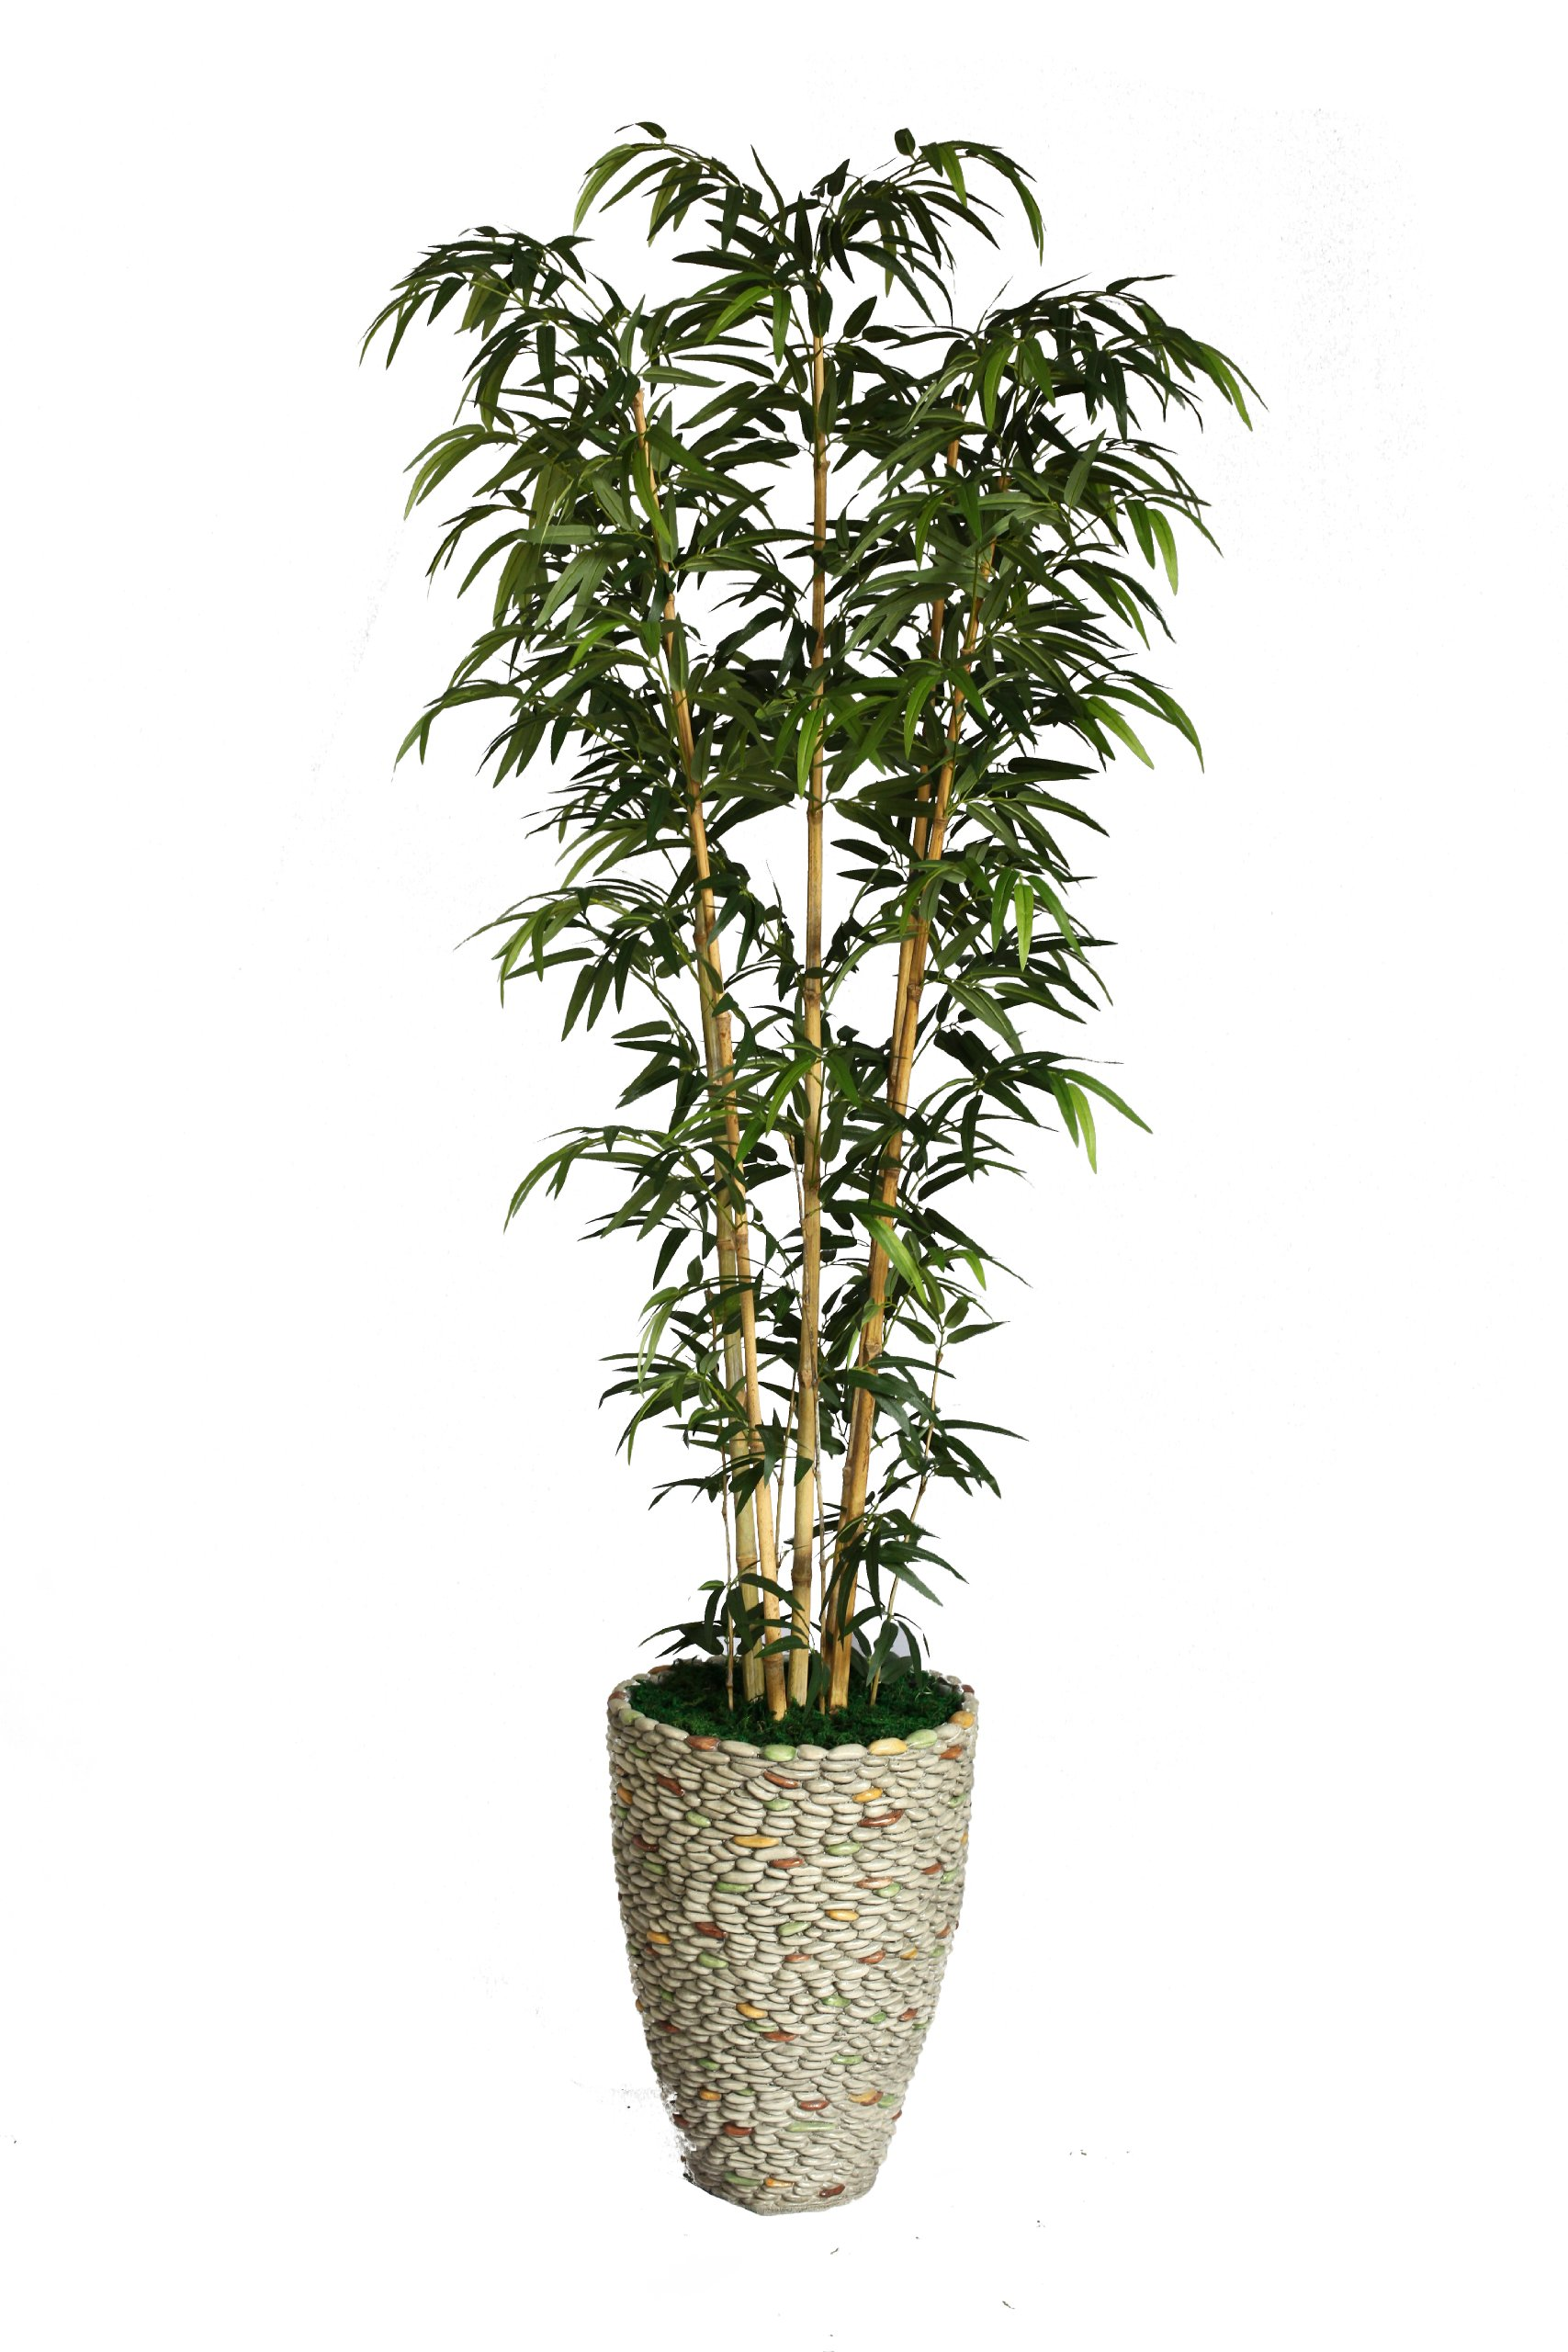 Laura Ashley VHX116209 86-Inch Natural Bamboo Tree in 16-Inch Fiber Stone Planter